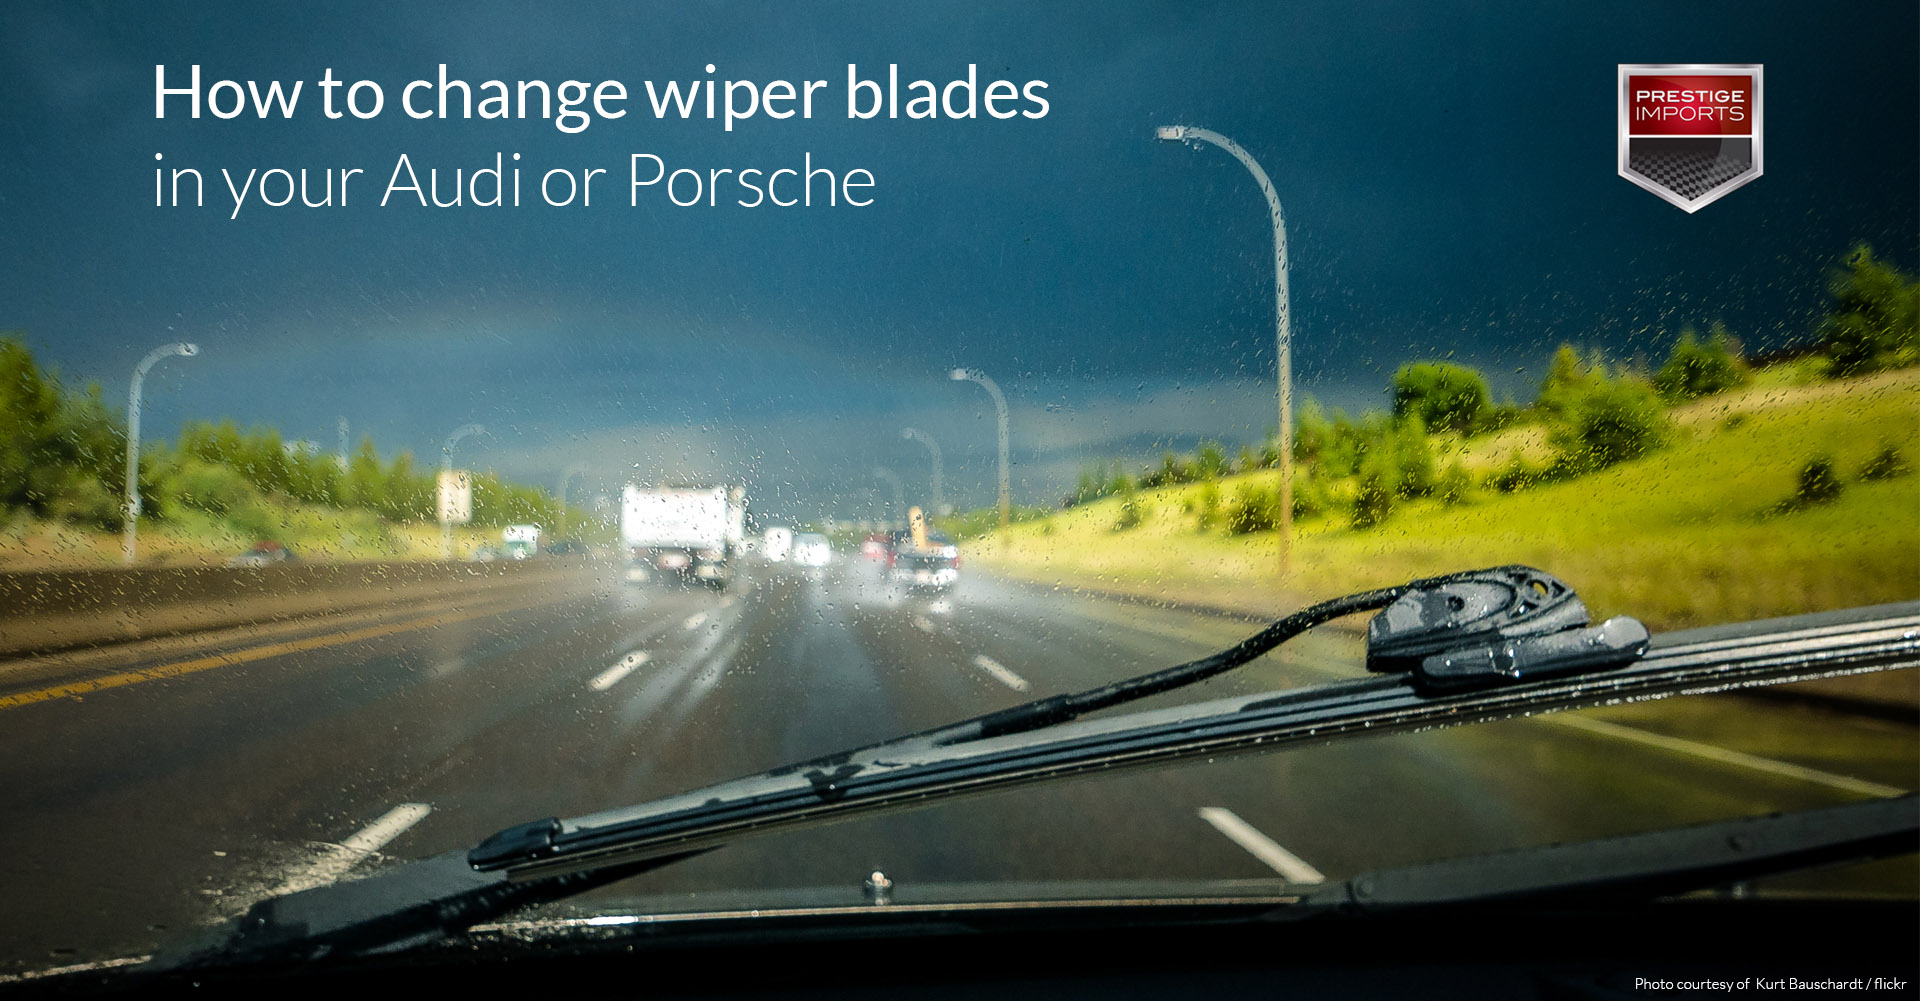 Windshield wiper blade and rainy windshield with busy highway in the background. Used to illustrate the article - How to change wiper blades in your Audi or Porsche